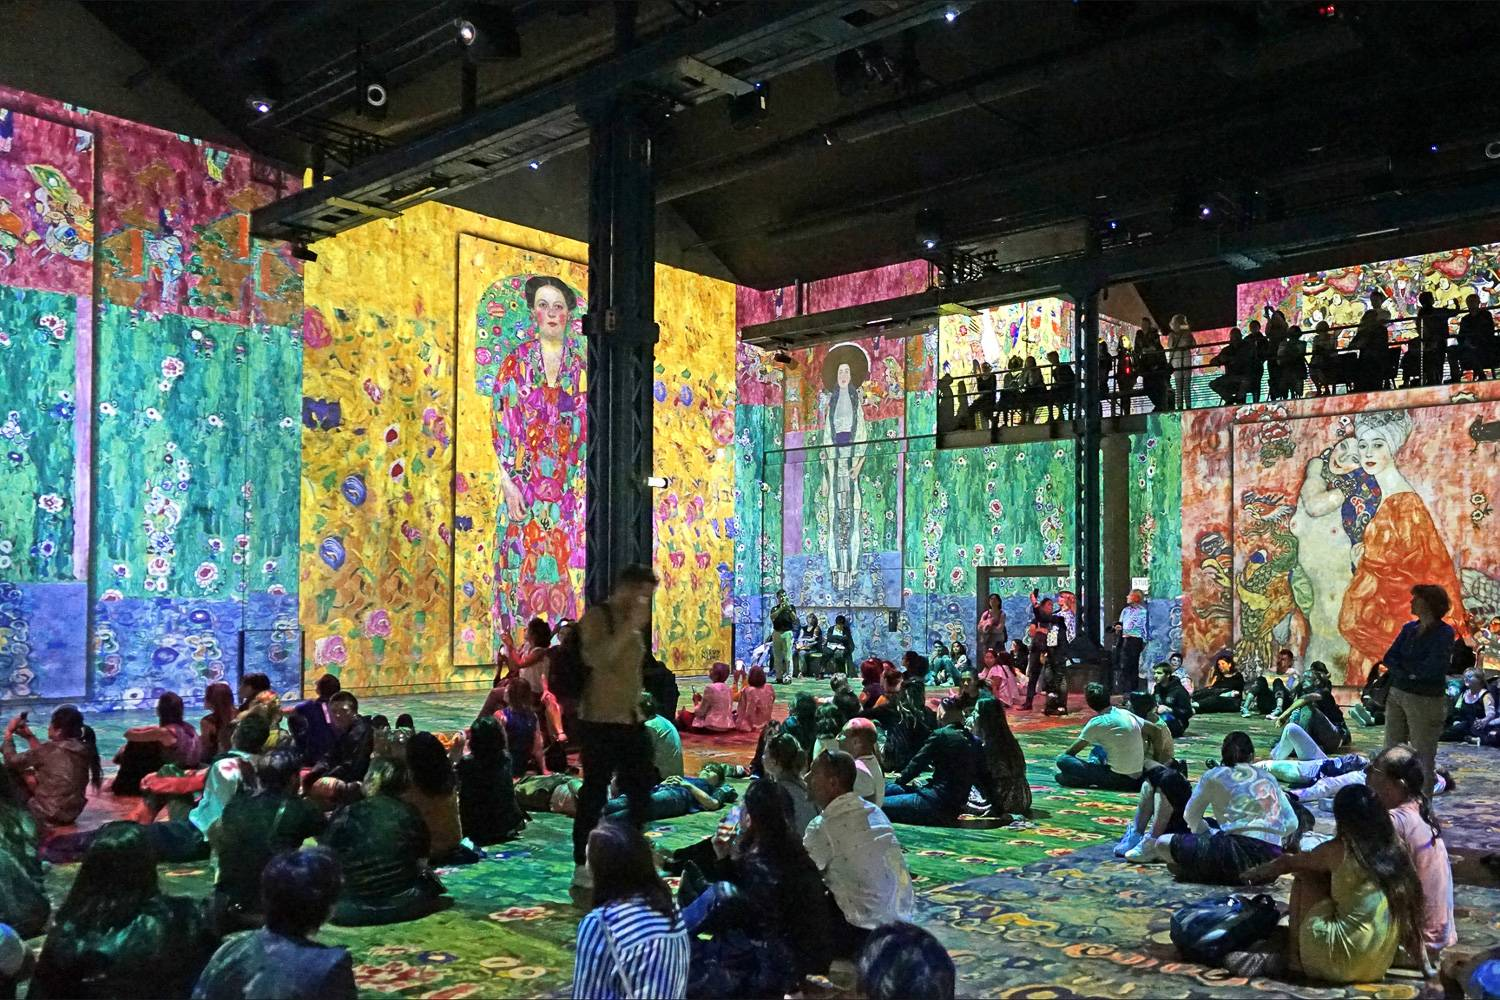 Image of people sitting in a digital exhibit of Gustav Klimt's art at Atelier des Lumieres gallery.